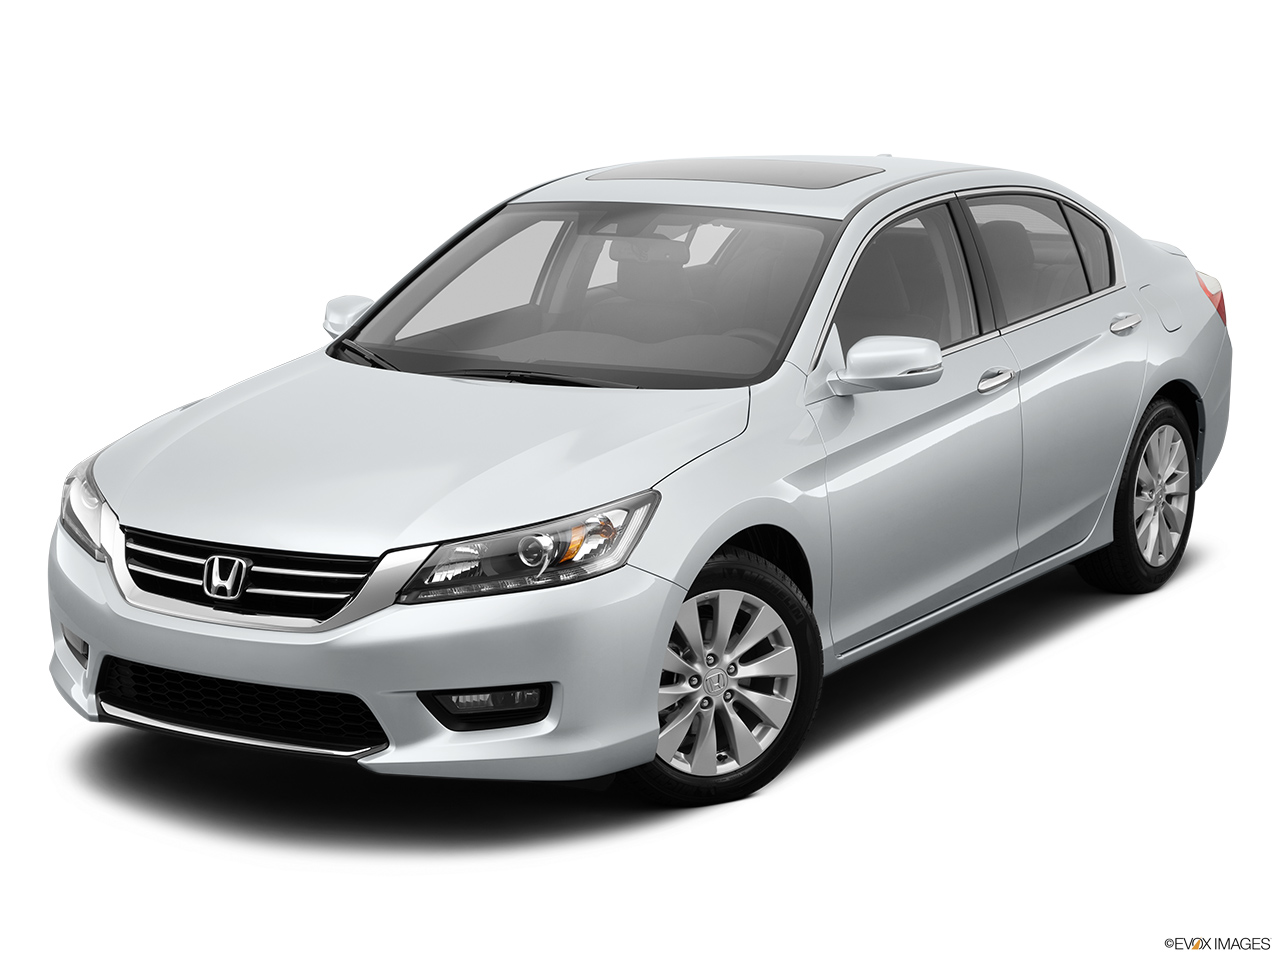 2014 honda accord sedan v6 automatic ex l w navi. Black Bedroom Furniture Sets. Home Design Ideas